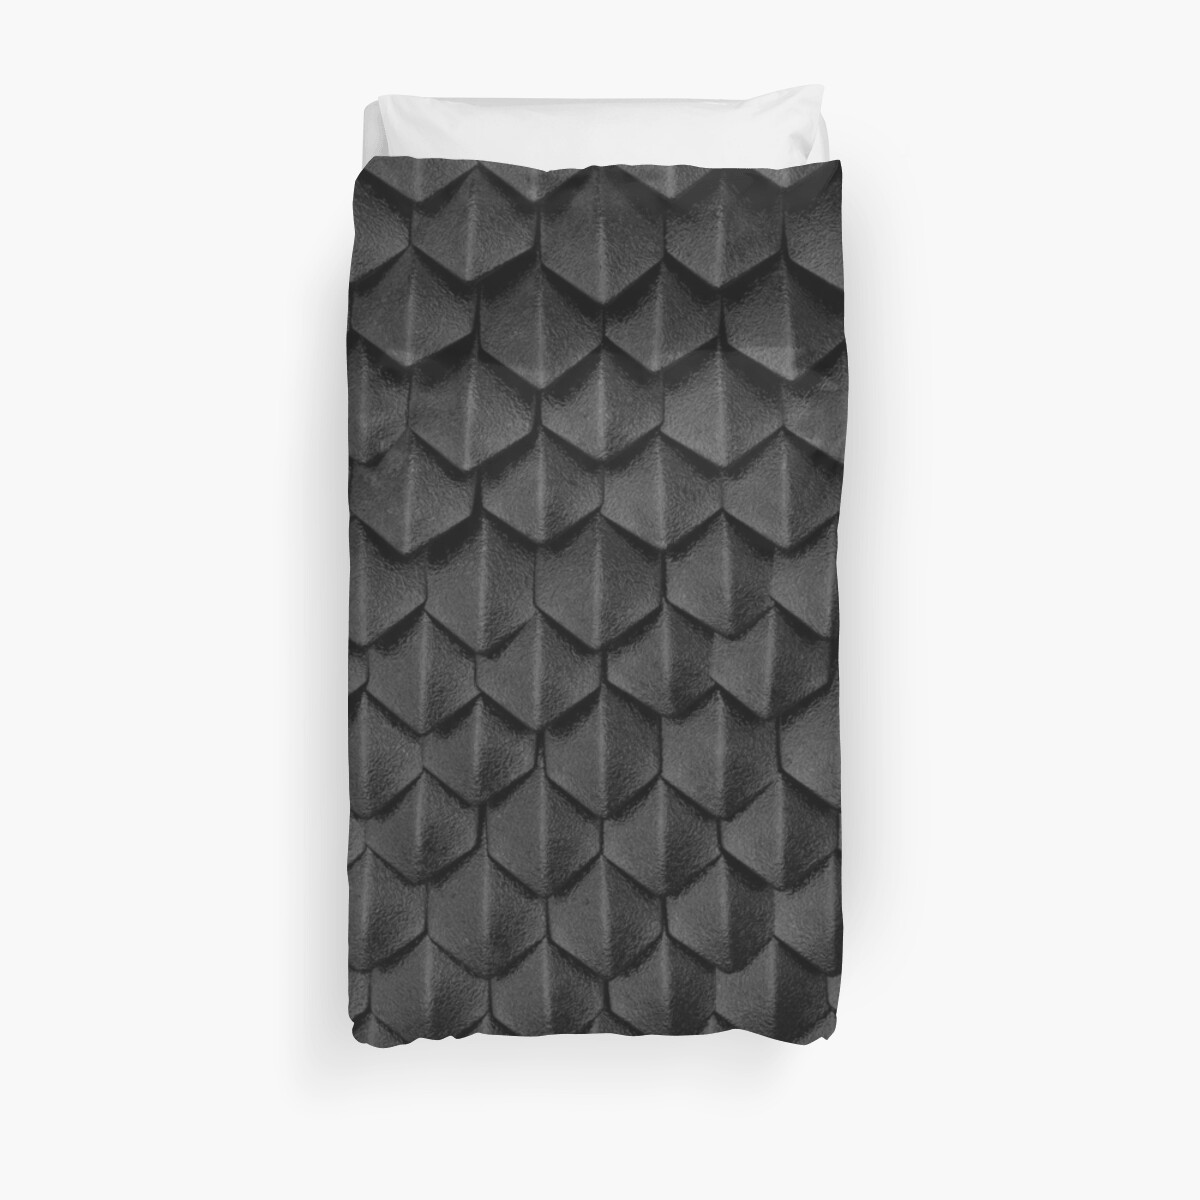 How to train your dragon toothless dragon scales duvet covers by how to train your dragon toothless dragon scales by luckdragongifts ccuart Gallery